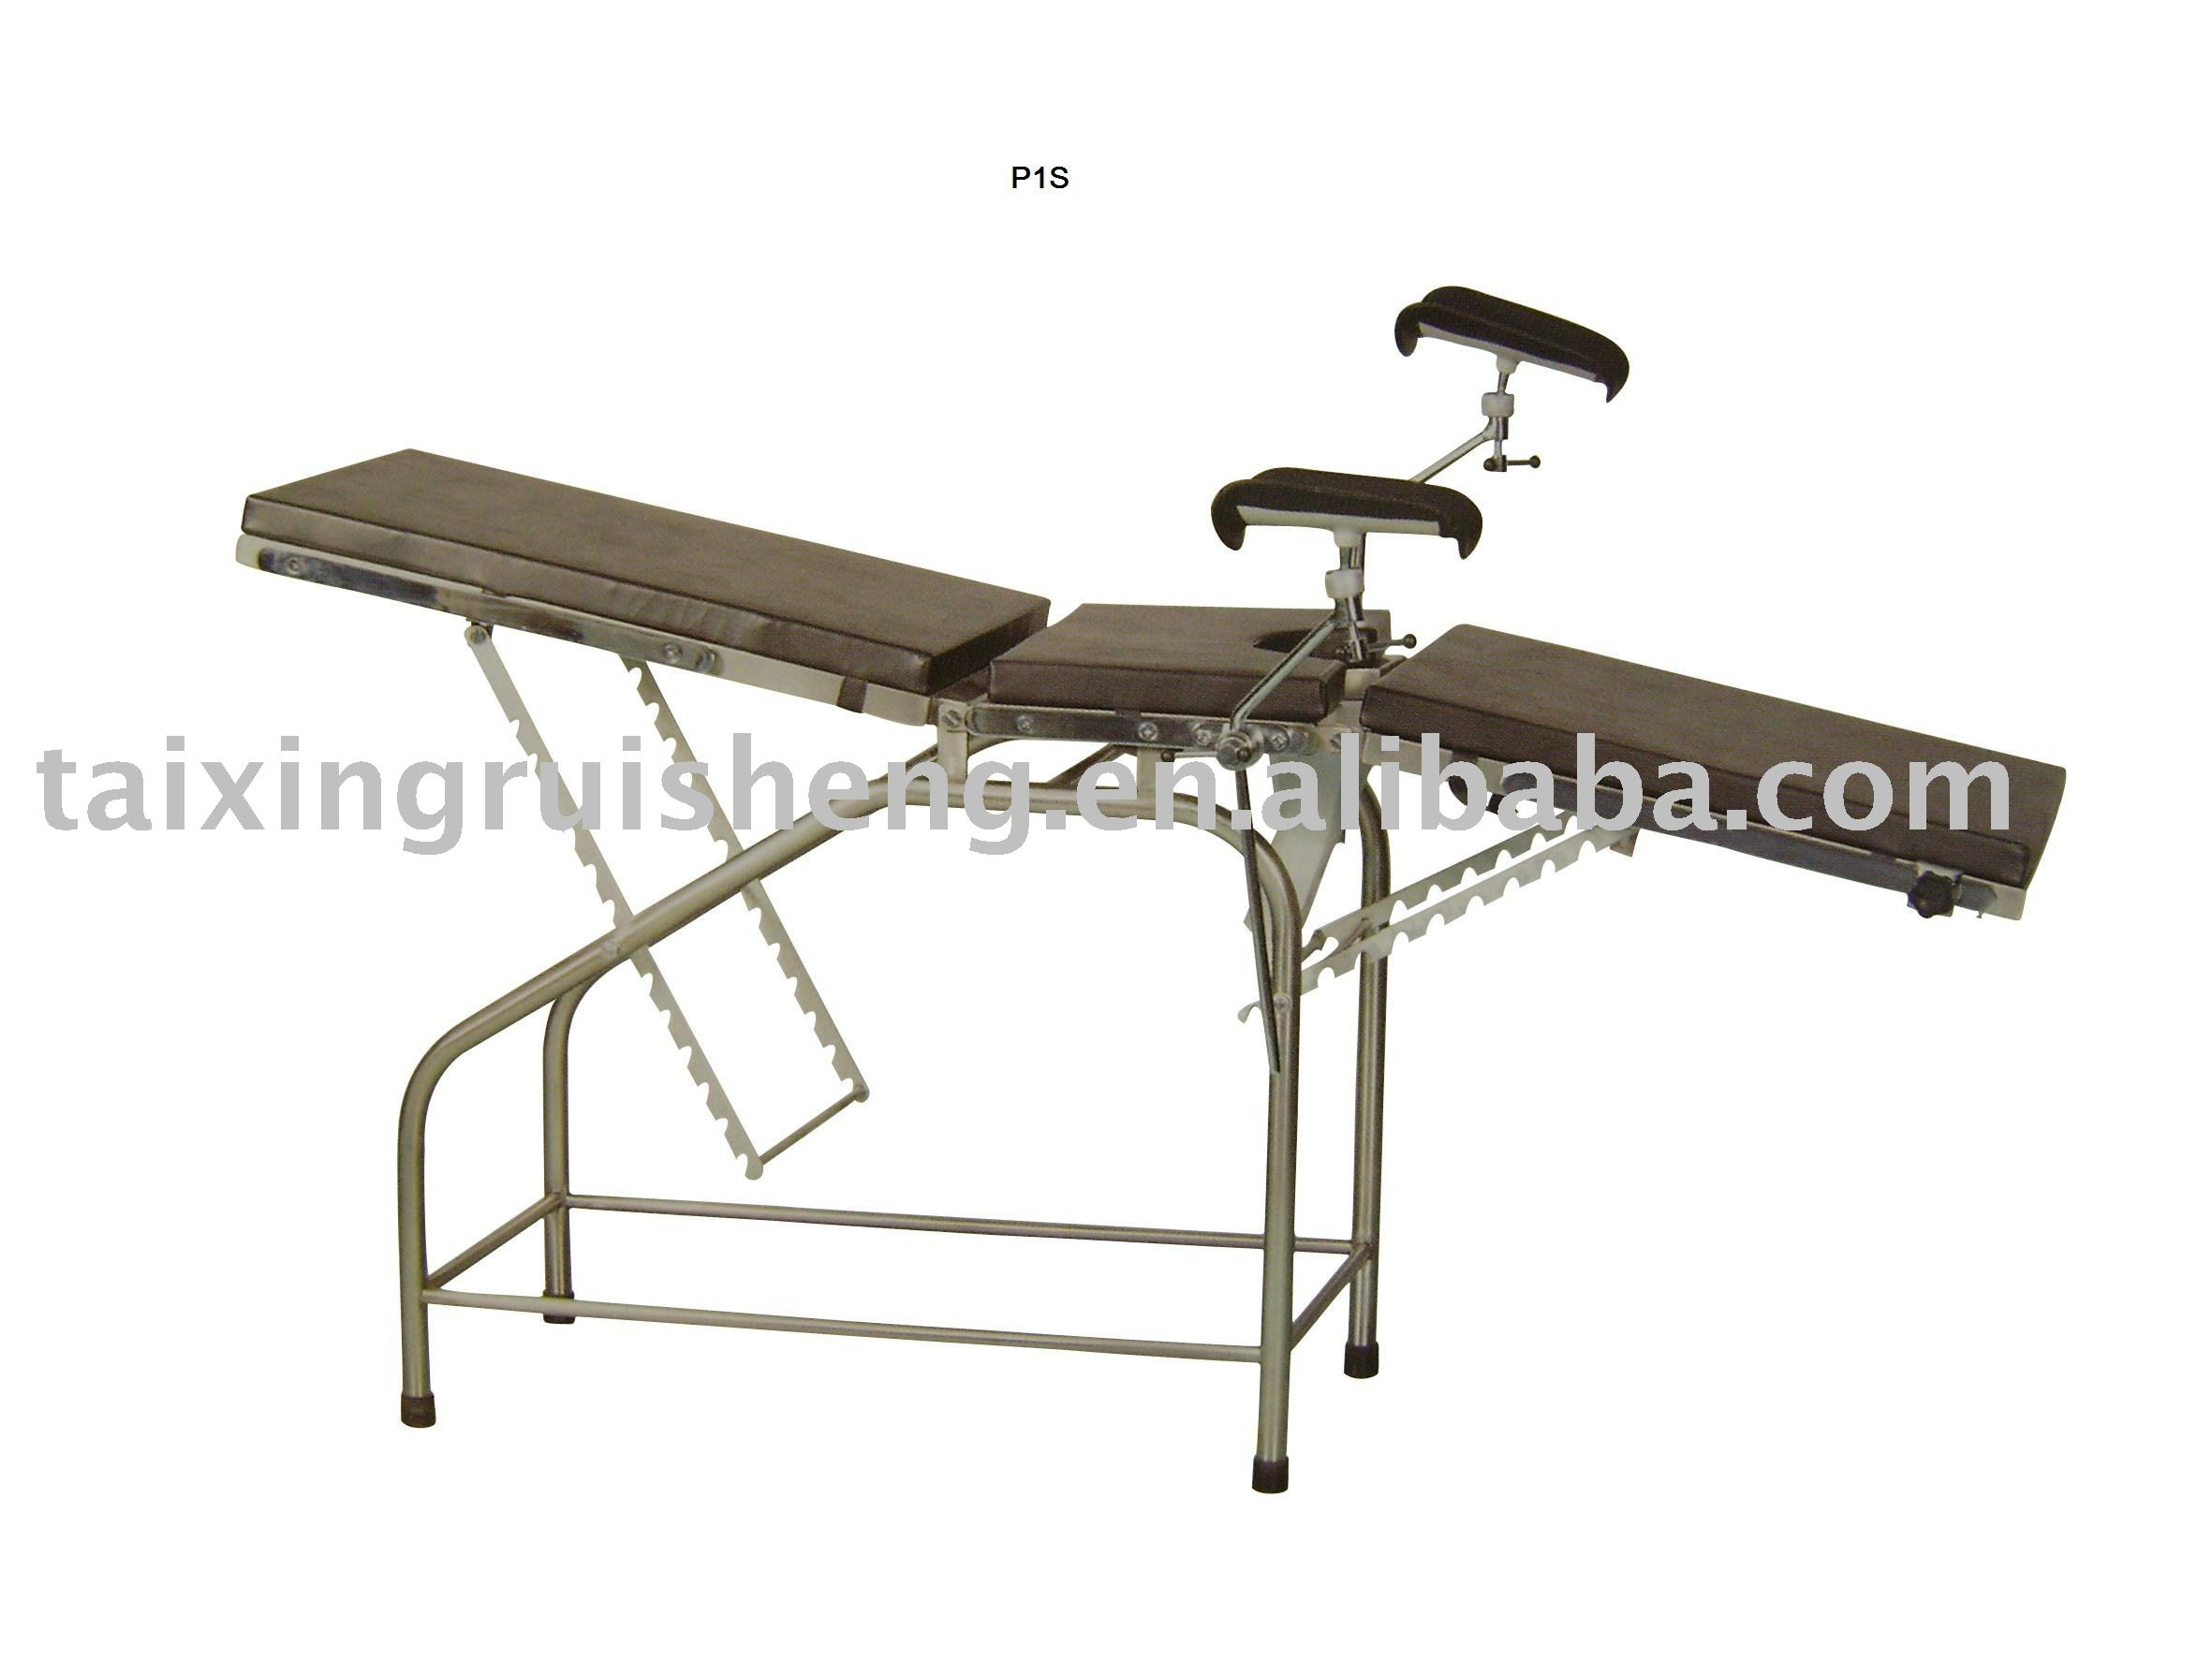 Simple Manual Operating Table Medical Equipment(2D, 2E)